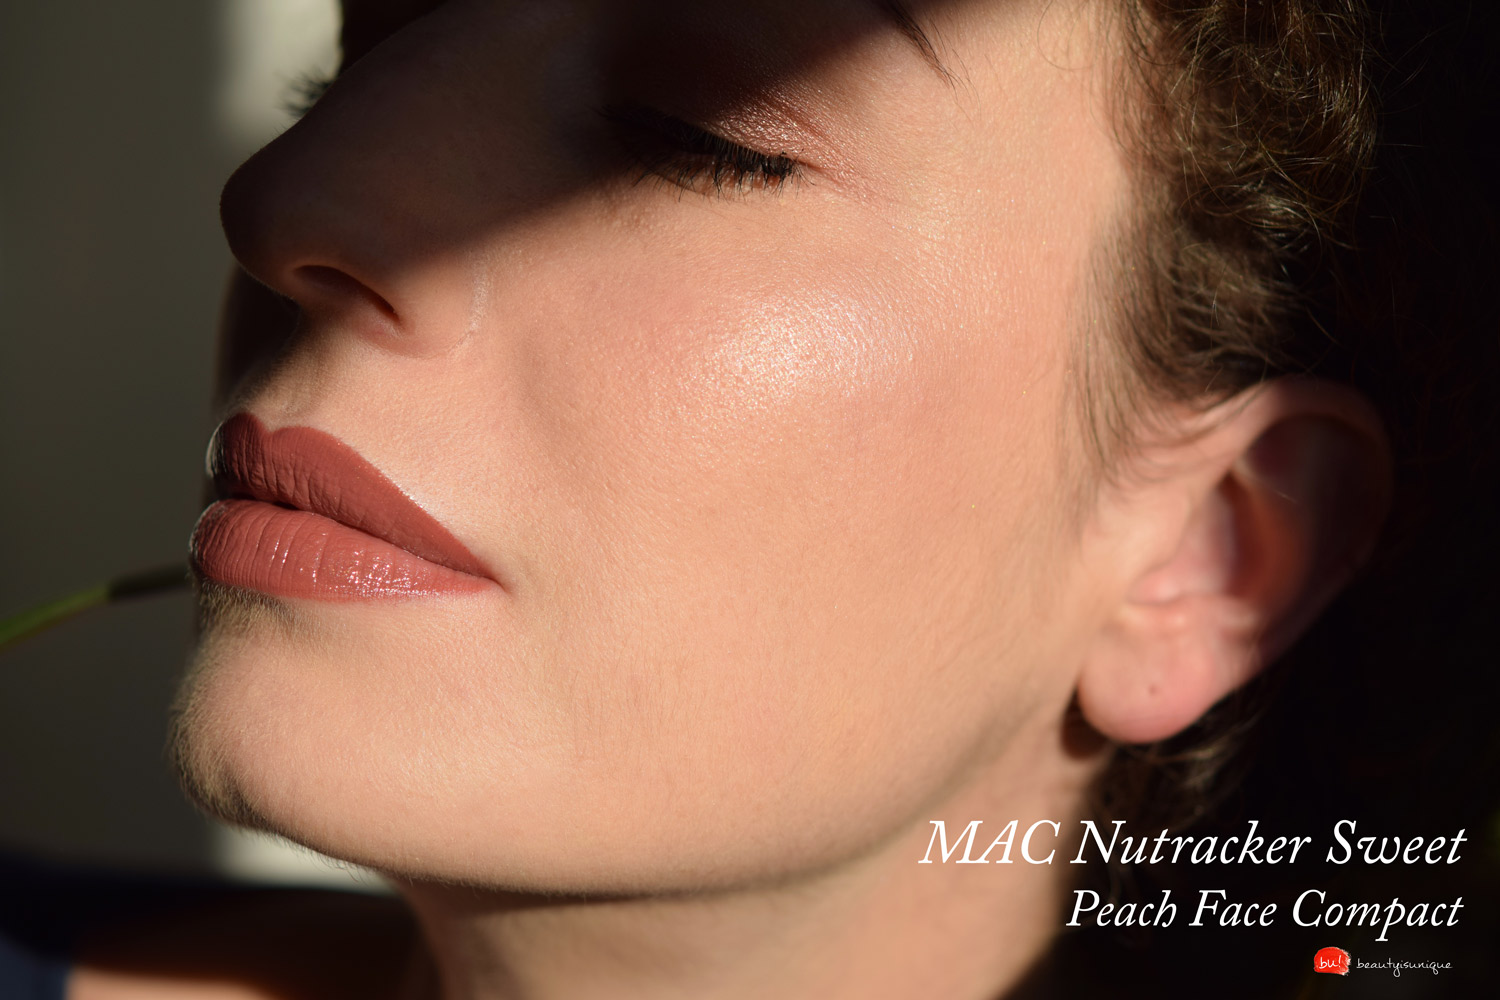 Mac-nutcracker-sweet-peach-face-compact